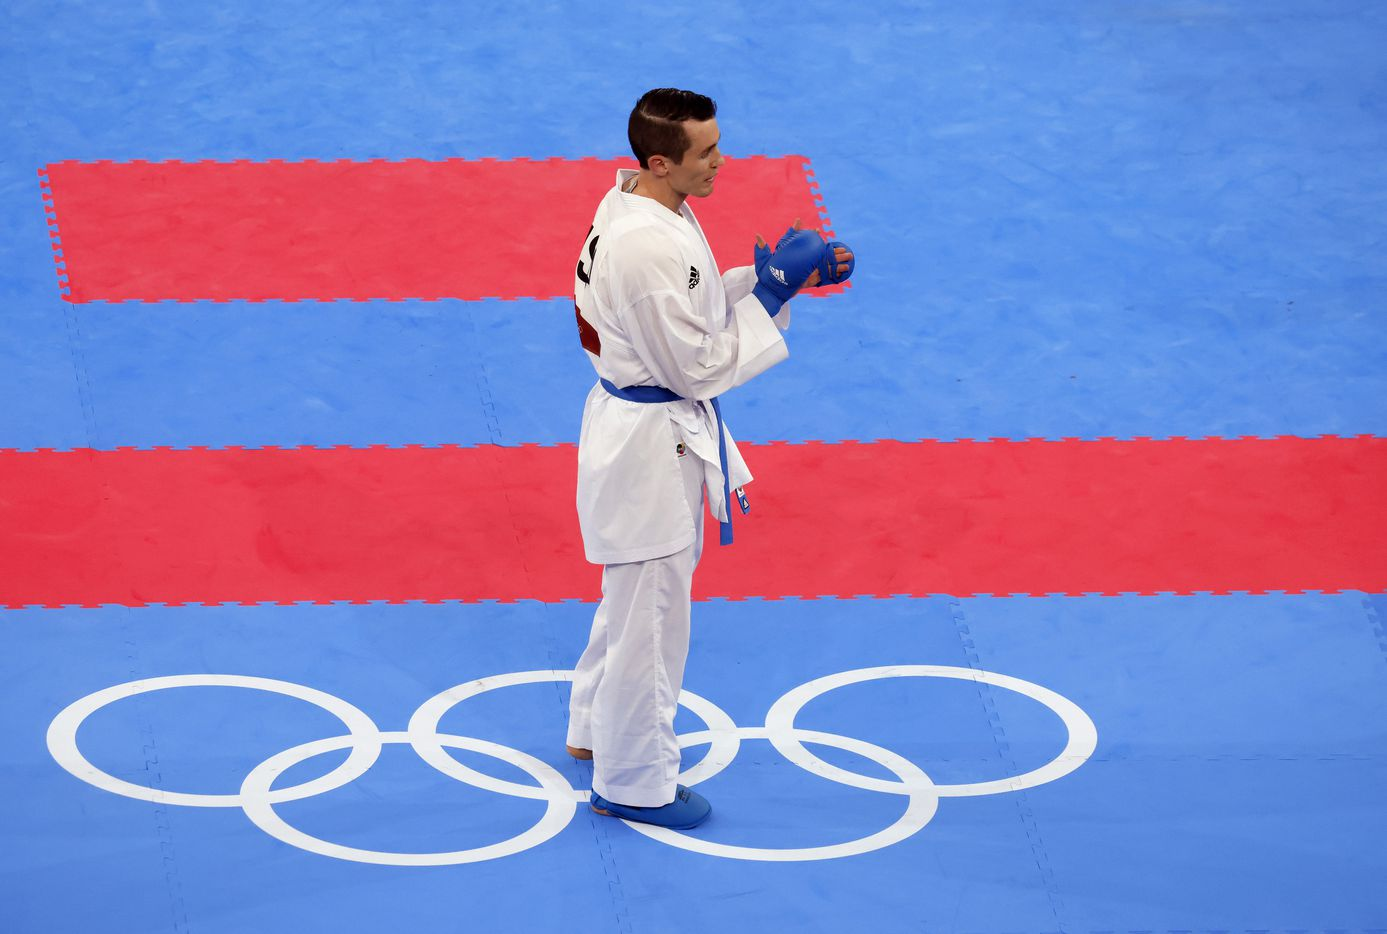 USA's Tom Scott claps after defeating Egypt's Abdalla Abdelaziz during the karate men's kumite -75kg elimination round at the postponed 2020 Tokyo Olympics at Nippon Budokan, on Friday, August 6, 2021, in Tokyo, Japan. Scott defeated Abdelaziz 7-6. Scott finished in fourth place in his pool and did not advance to the next round. (Vernon Bryant/The Dallas Morning News)